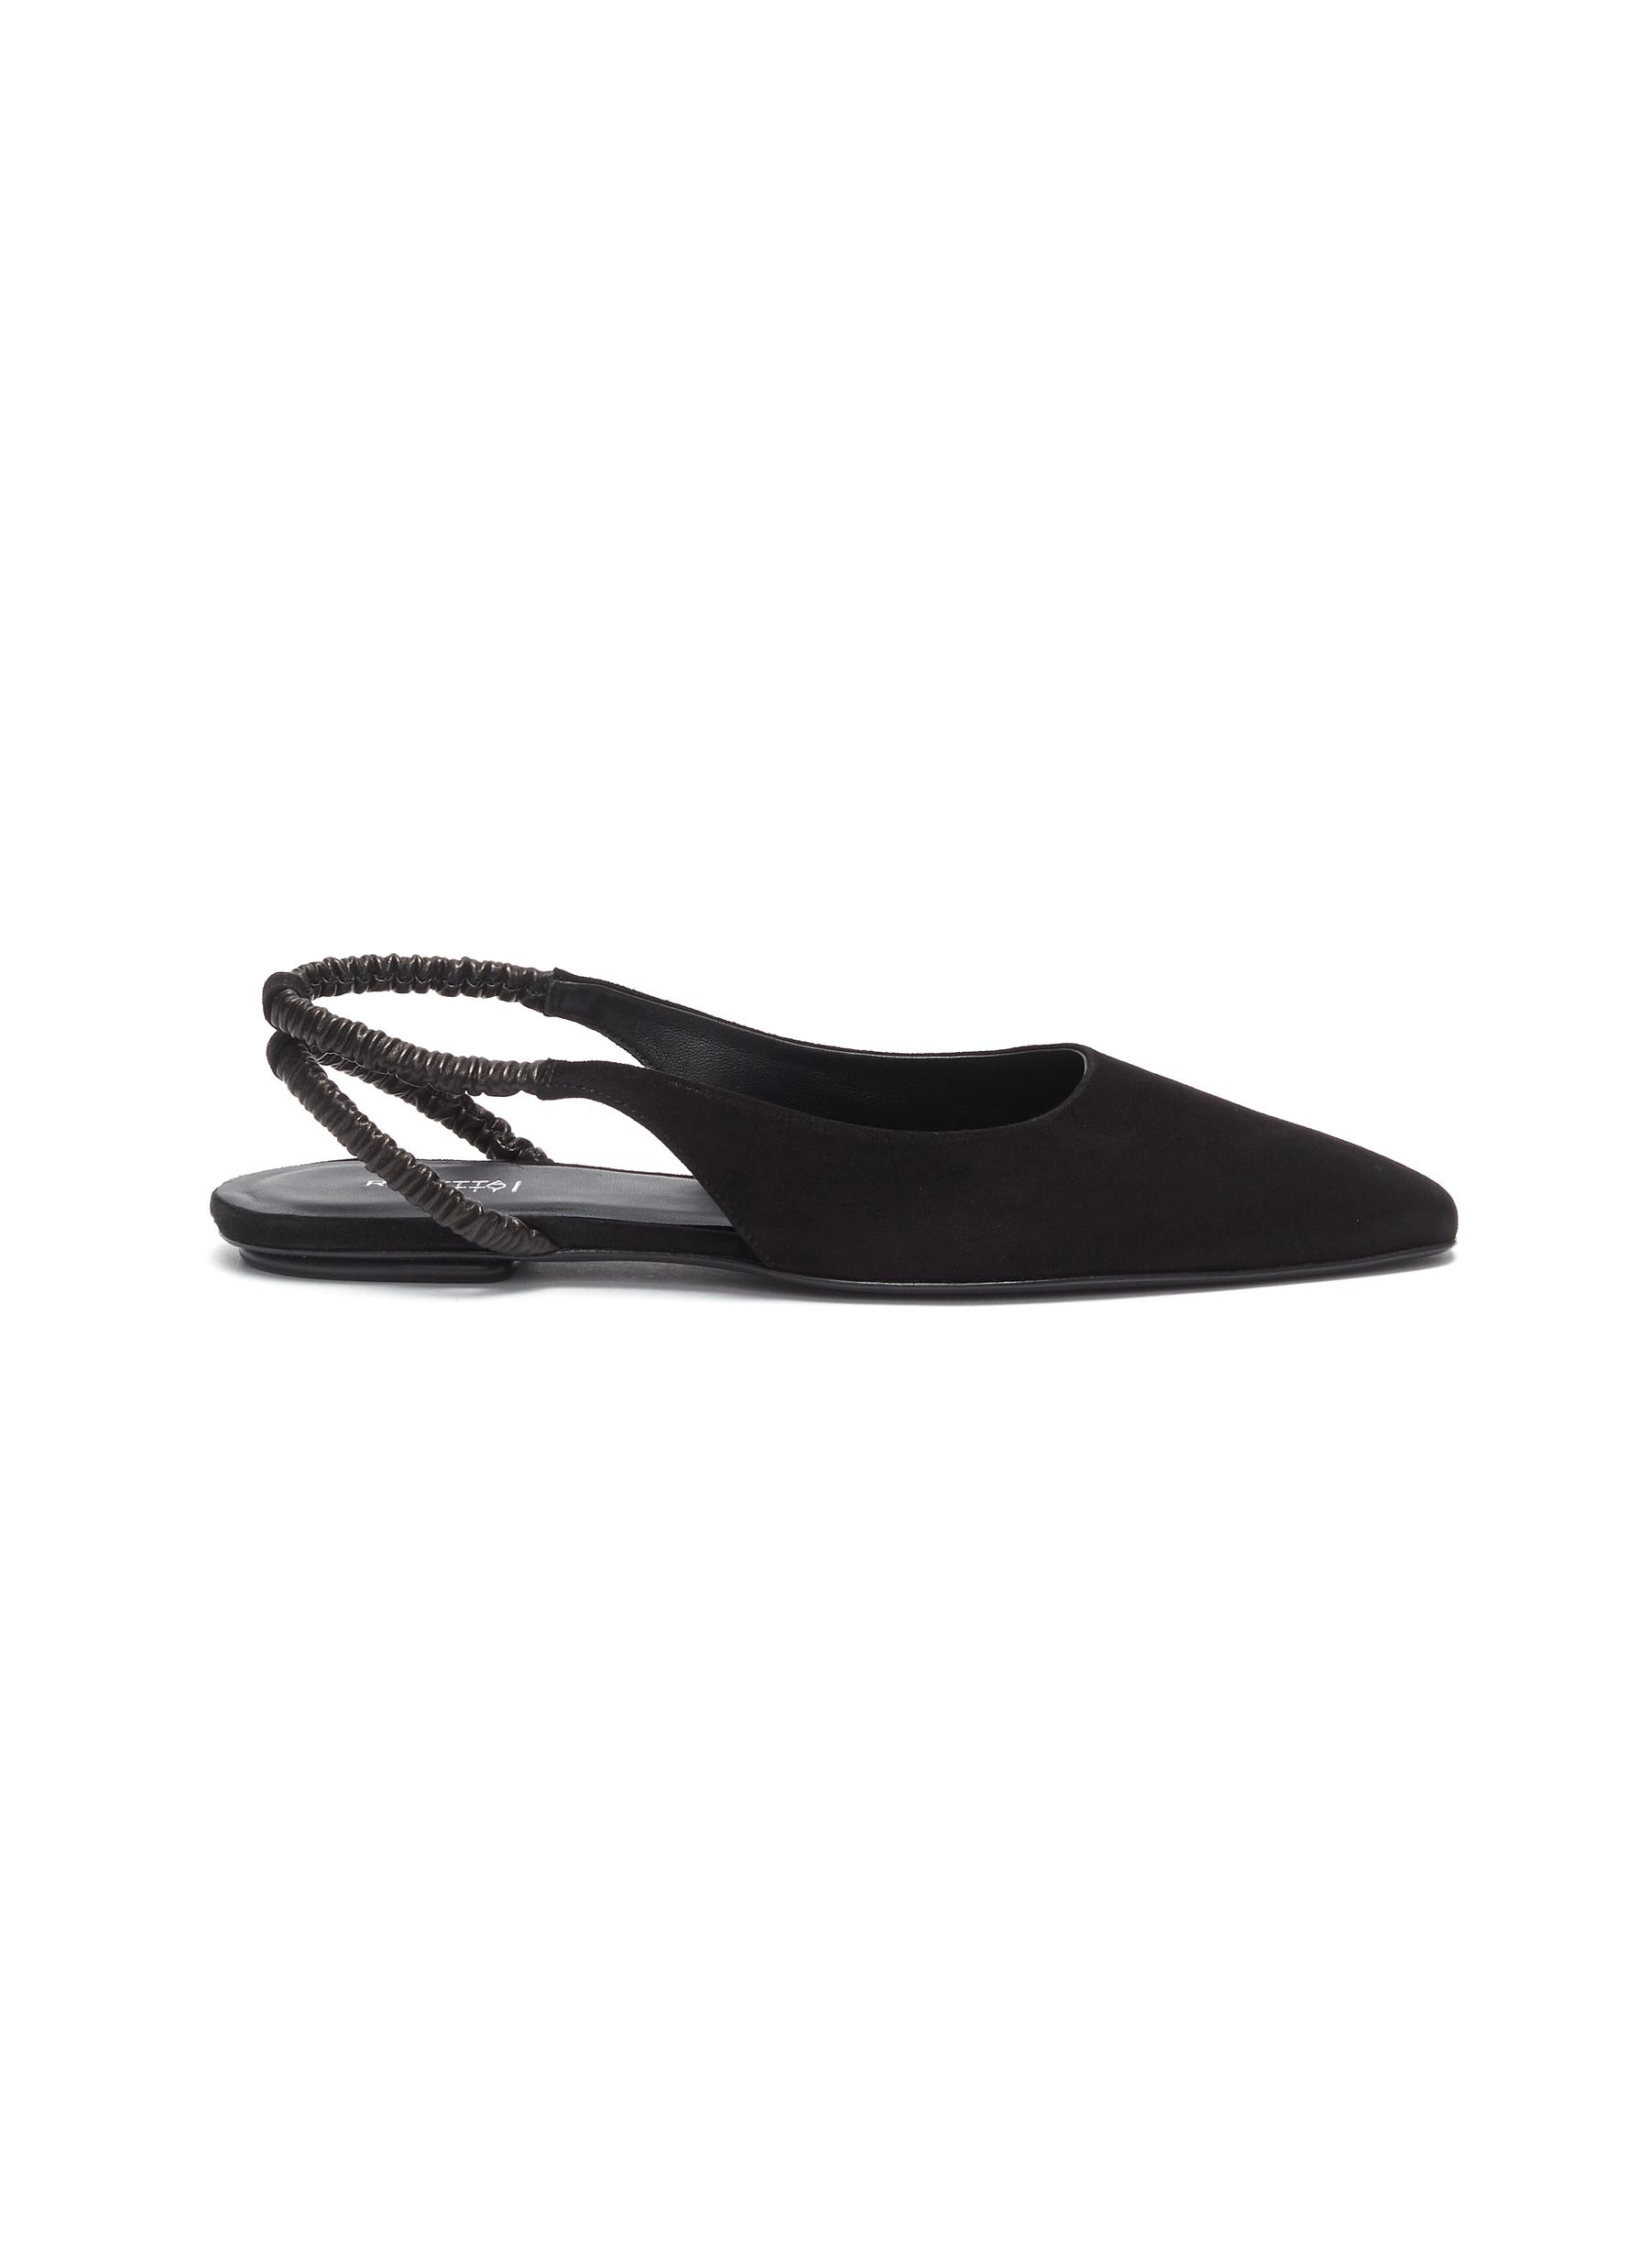 Suede slingback flats by Rosetta Getty